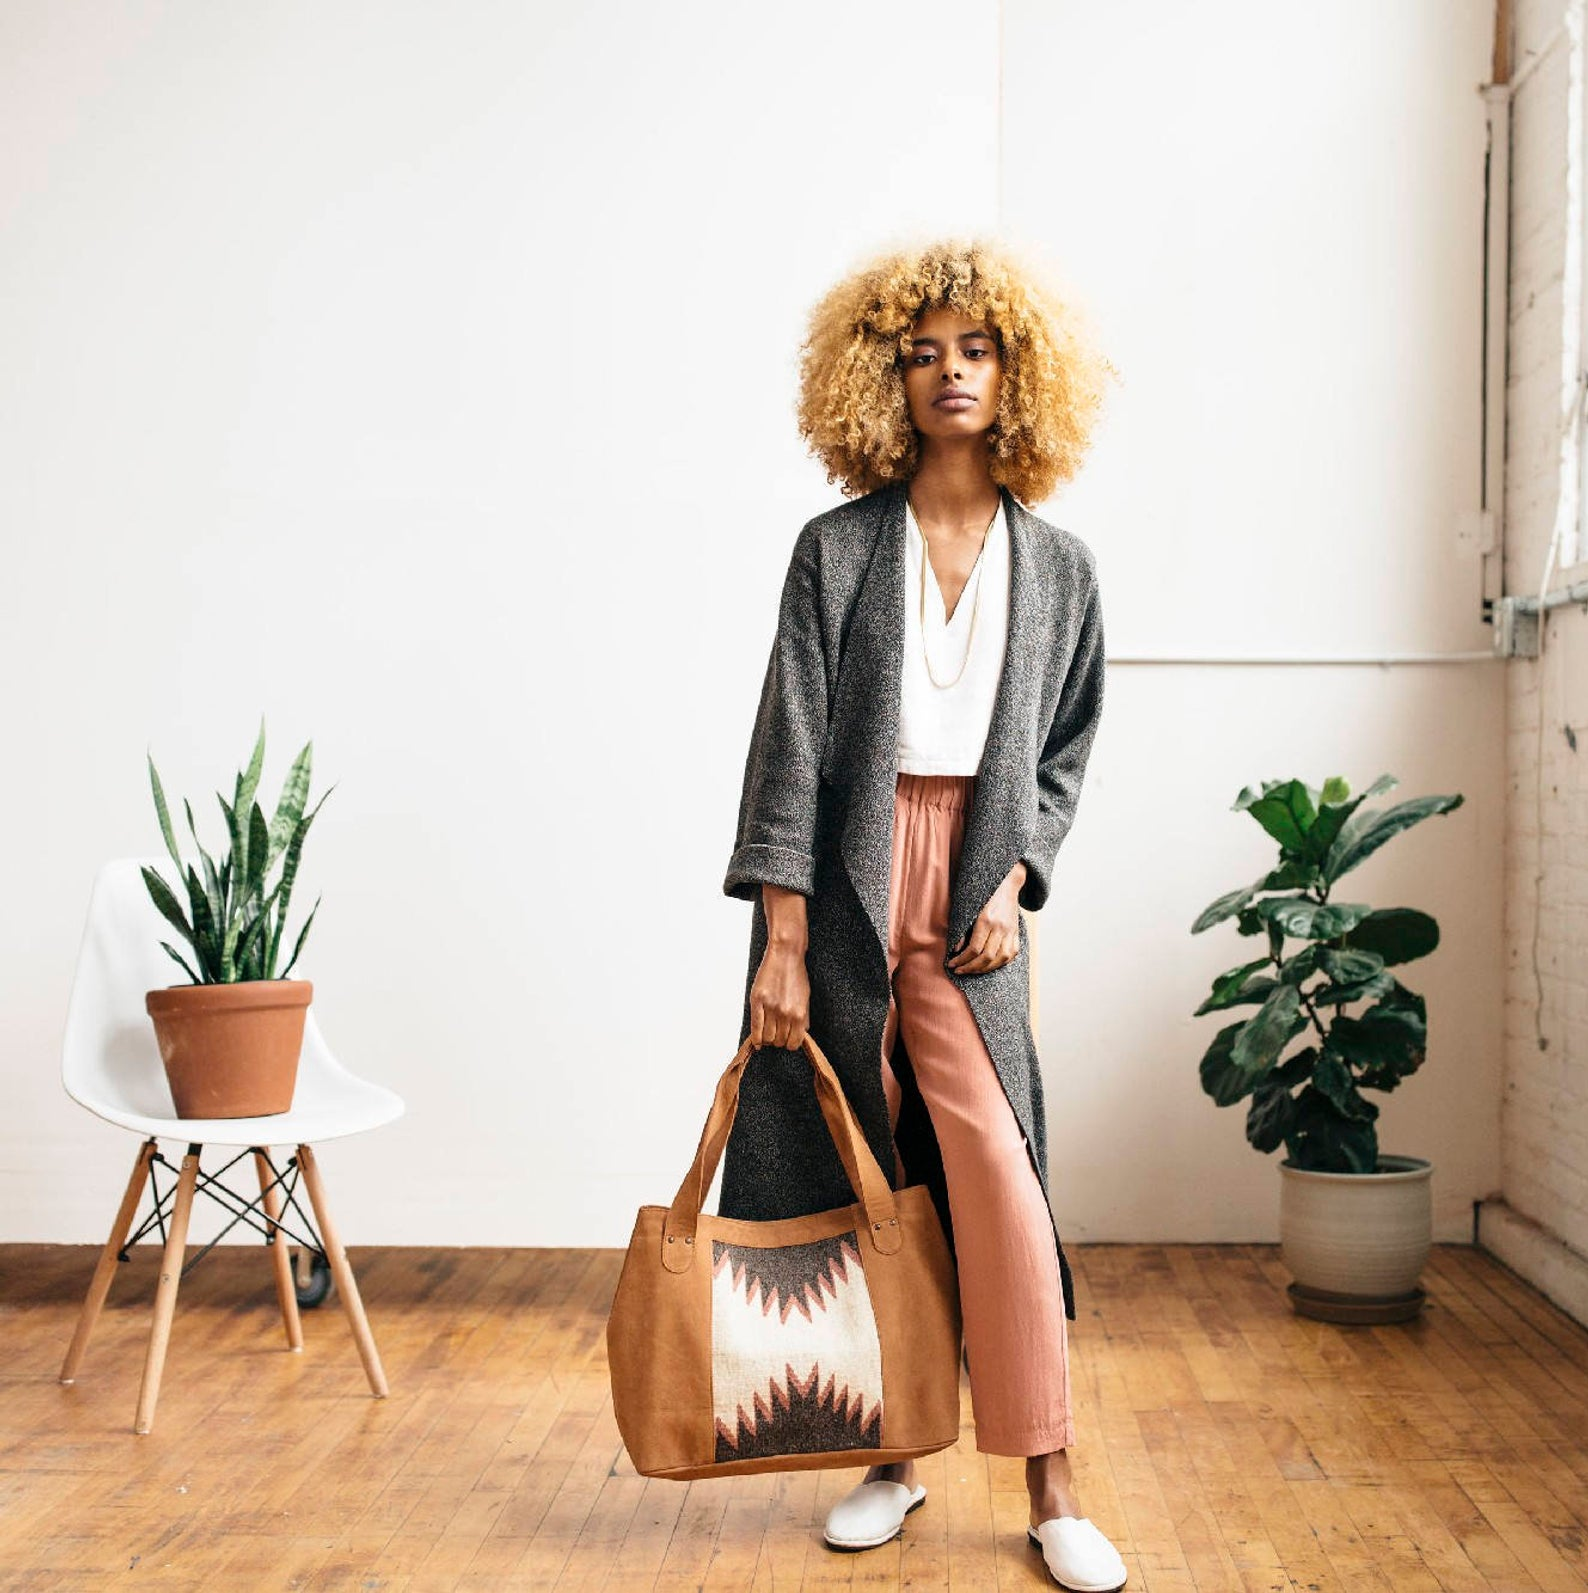 Handmade Soft Leather Tote Bag By MZ Fair Trade